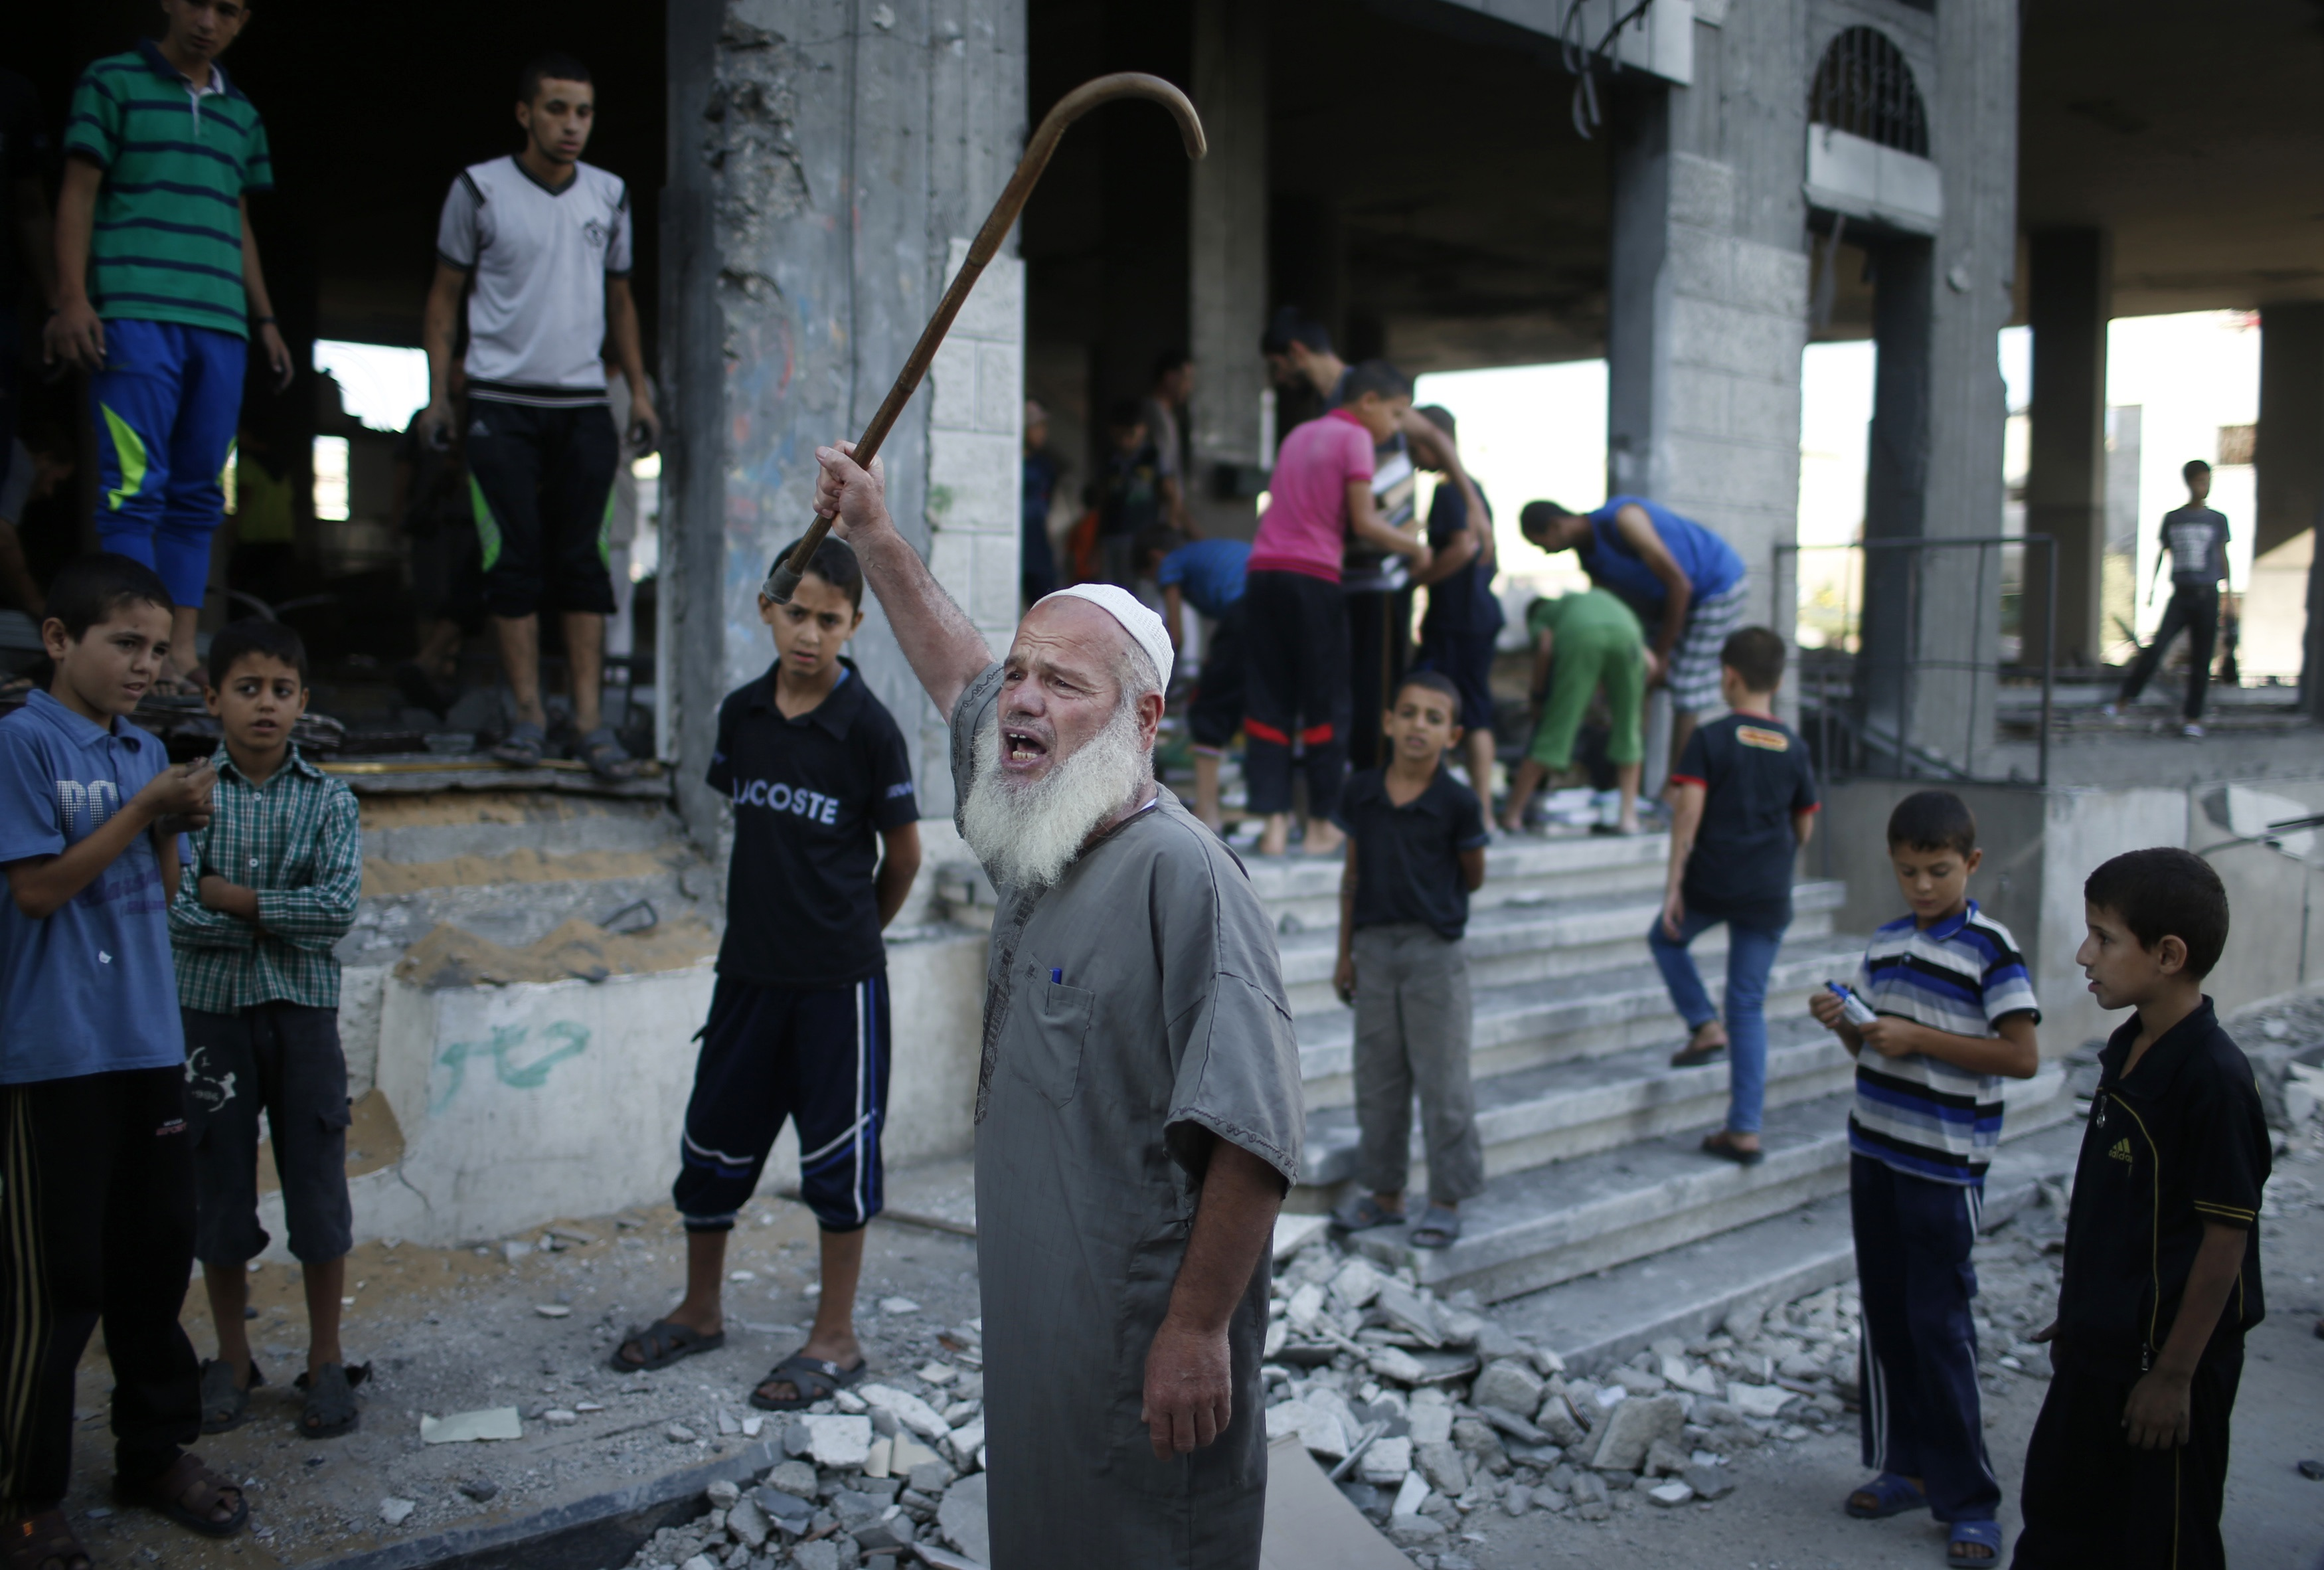 A Palestinian man reacts as he stands outside a badly damaged mosque, which witnesses said was hit in an Israeli air strike, in Gaza City August 9, 2014.